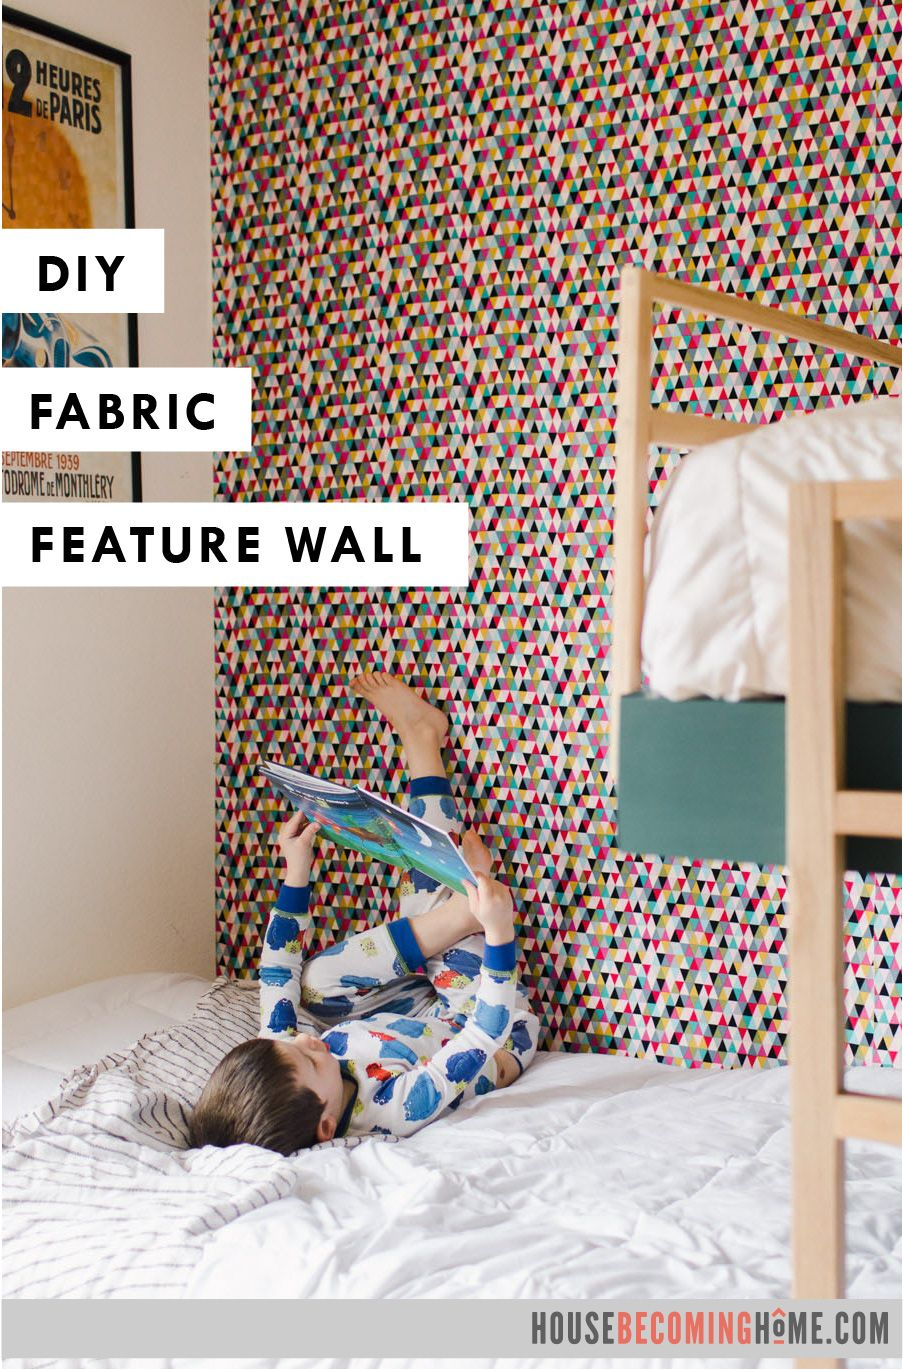 Diy Fabric Feature Wall House Becoming Home In 2020 Temporary Wall Covering Fabric Covered Walls Feature Wall